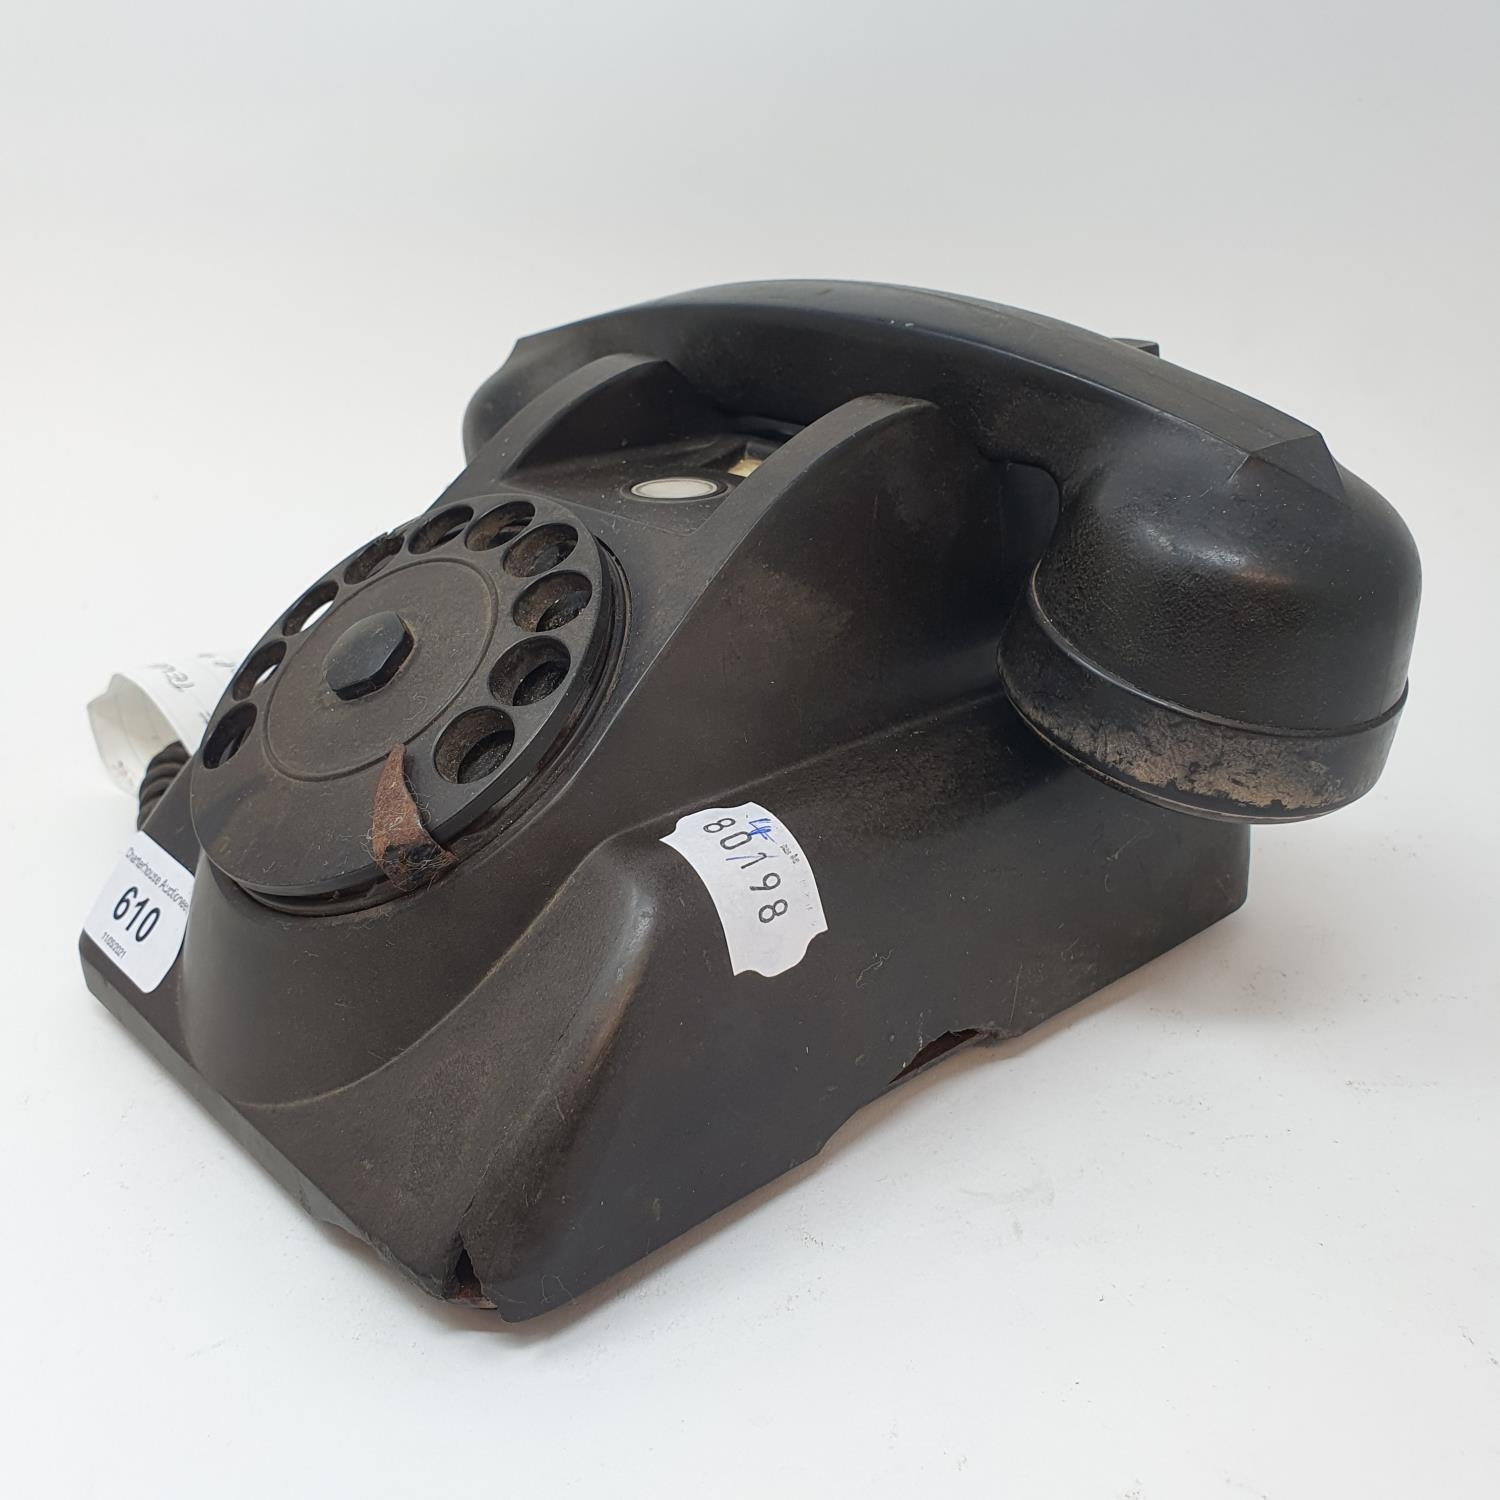 A Bakelite dial telephone, A515 Prop phone - Image 2 of 2